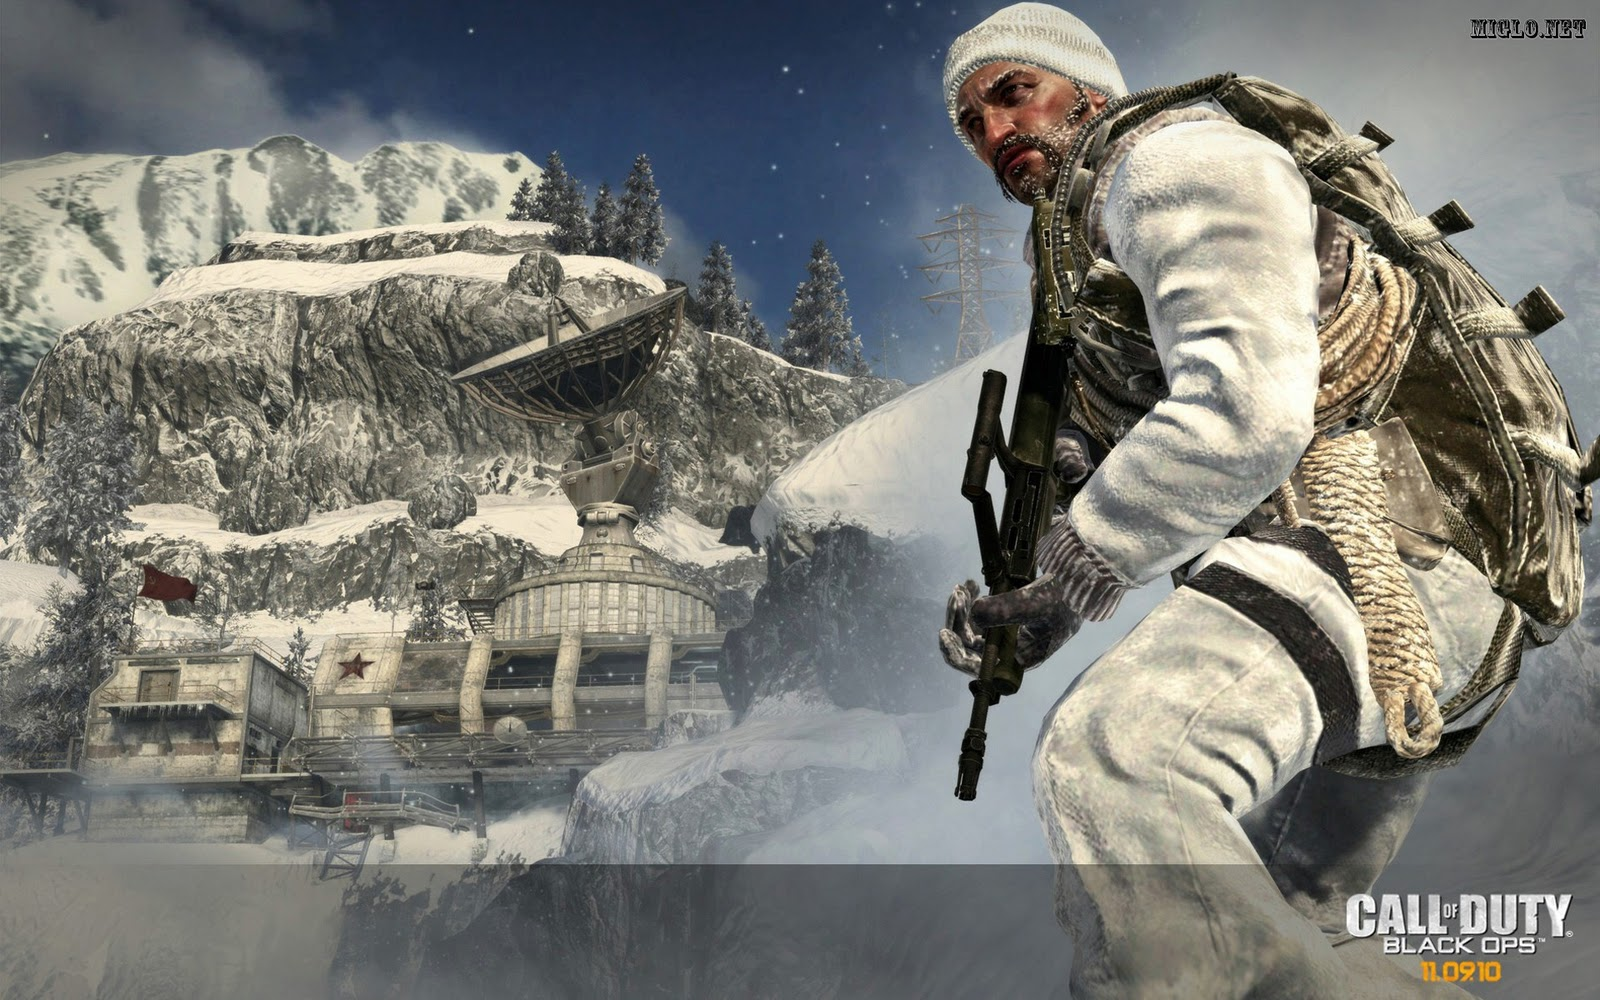 http://3.bp.blogspot.com/_nD_YgZuOadA/TUpkf-5PQ6I/AAAAAAAABV0/DIPj9StM6_8/s1600/wallpaper-fonds-decran-Call+of+Duty+Black+Ops+Winter.jpg